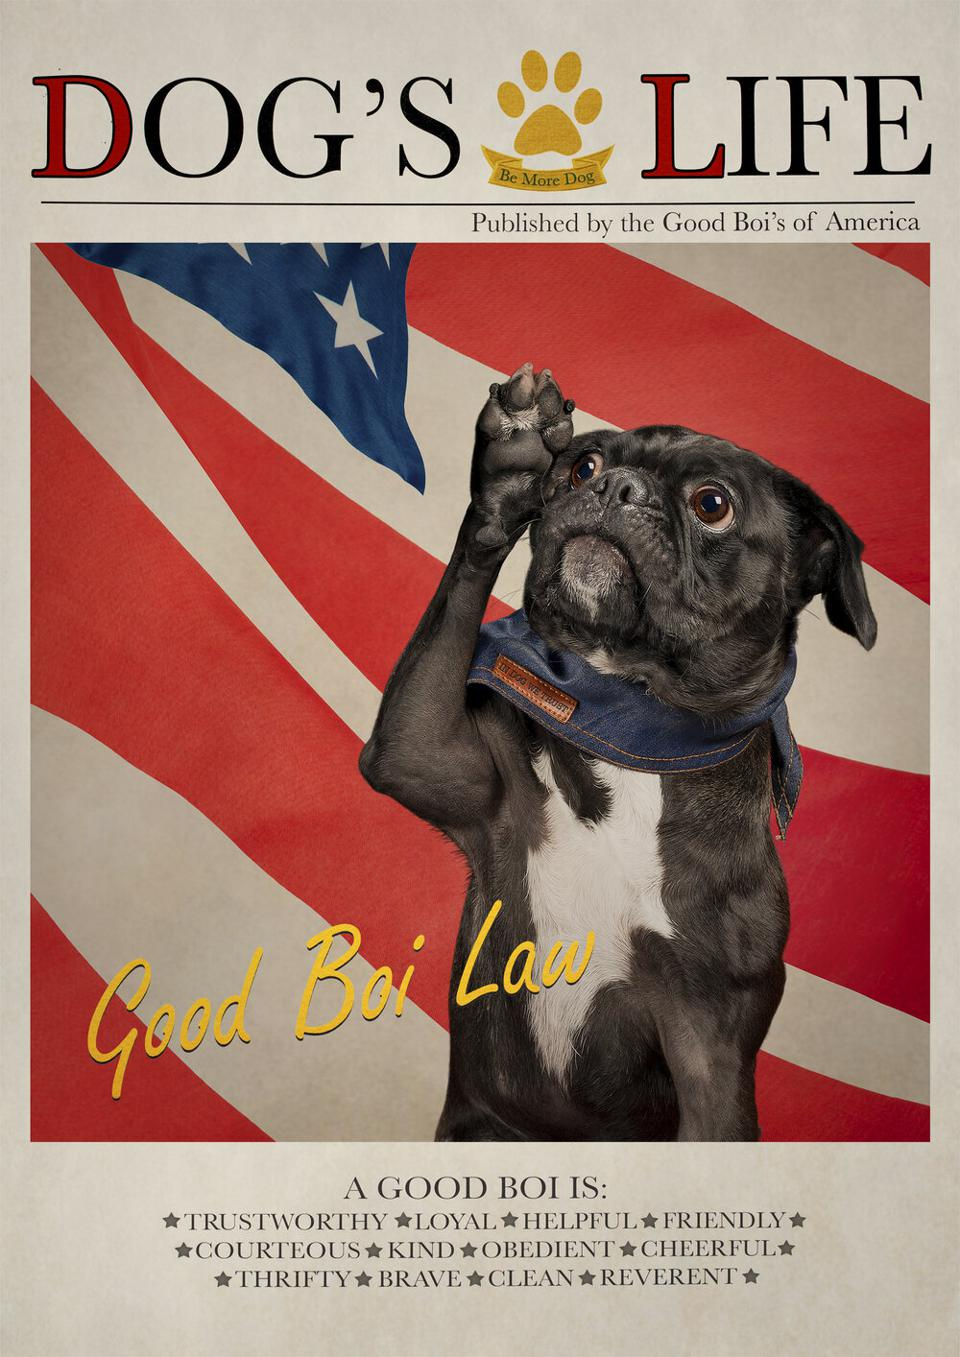 Patriotic Dog in a magazine's cover